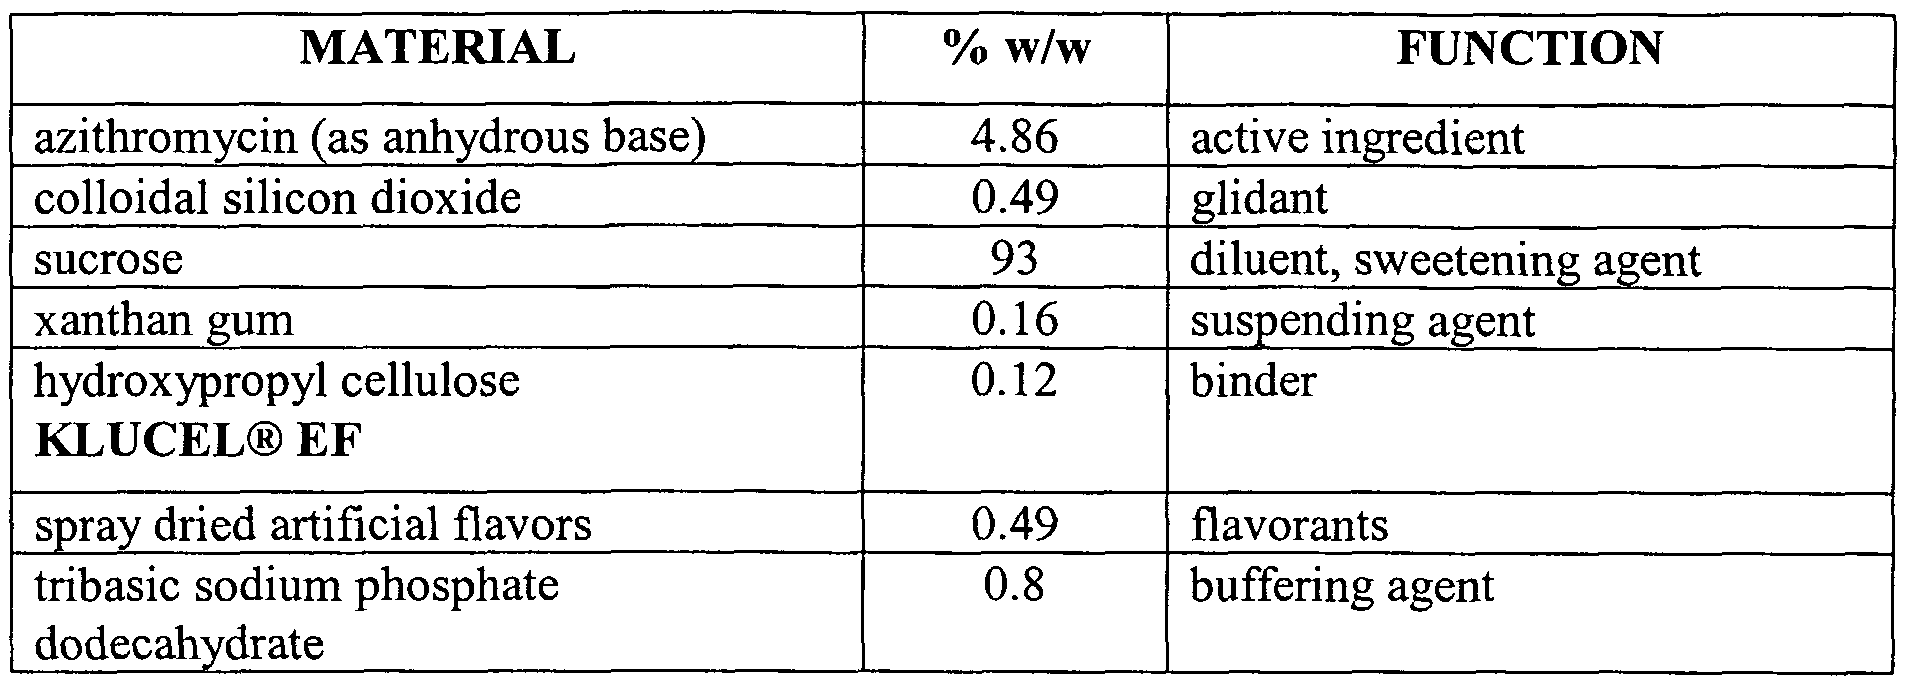 WO2006096182A1 - Azithromycin powder for oral suspension